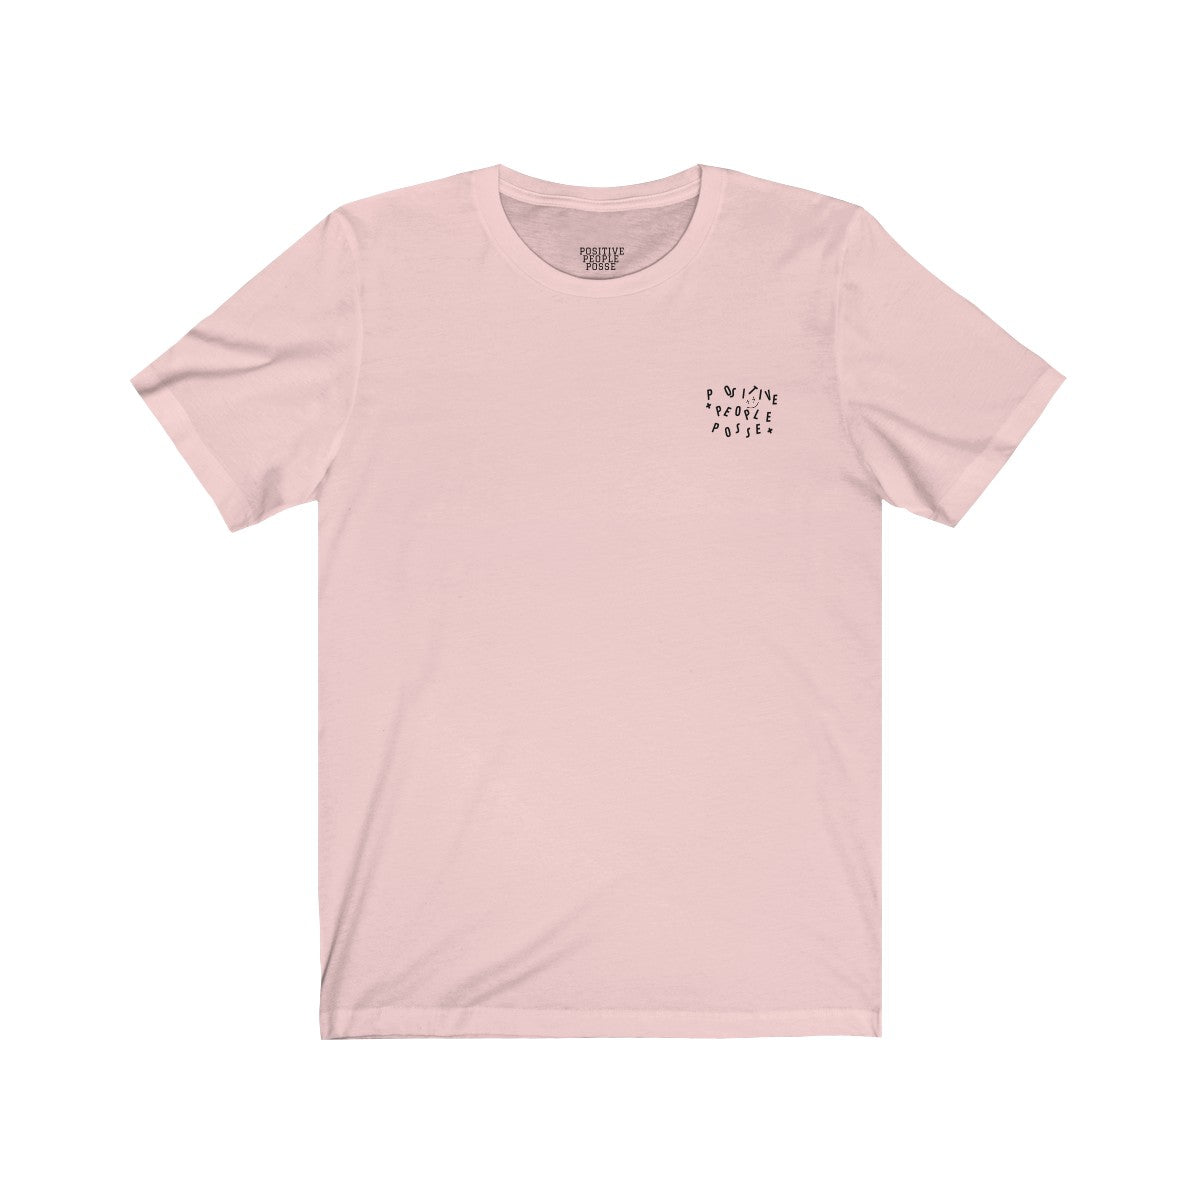 PPP SOUPY Unisex Jersey Short Sleeve Tee - +Positive People Posse+